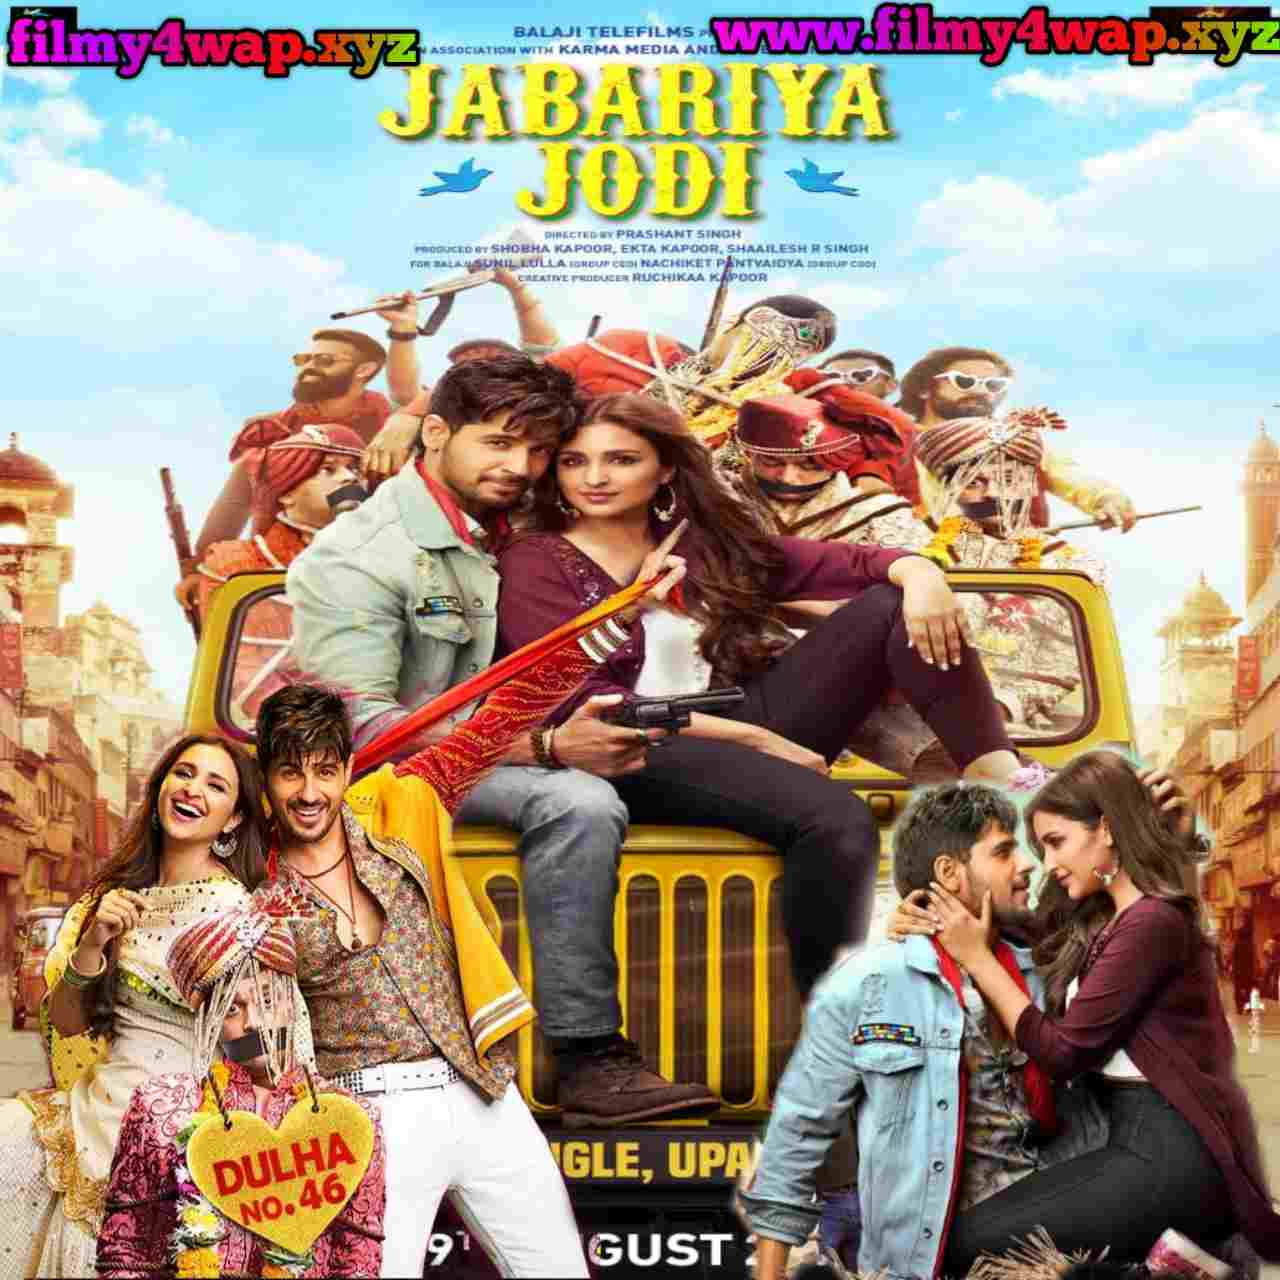 Jabariya-Jodi-2019-Bollywood-Full-HD-Movie